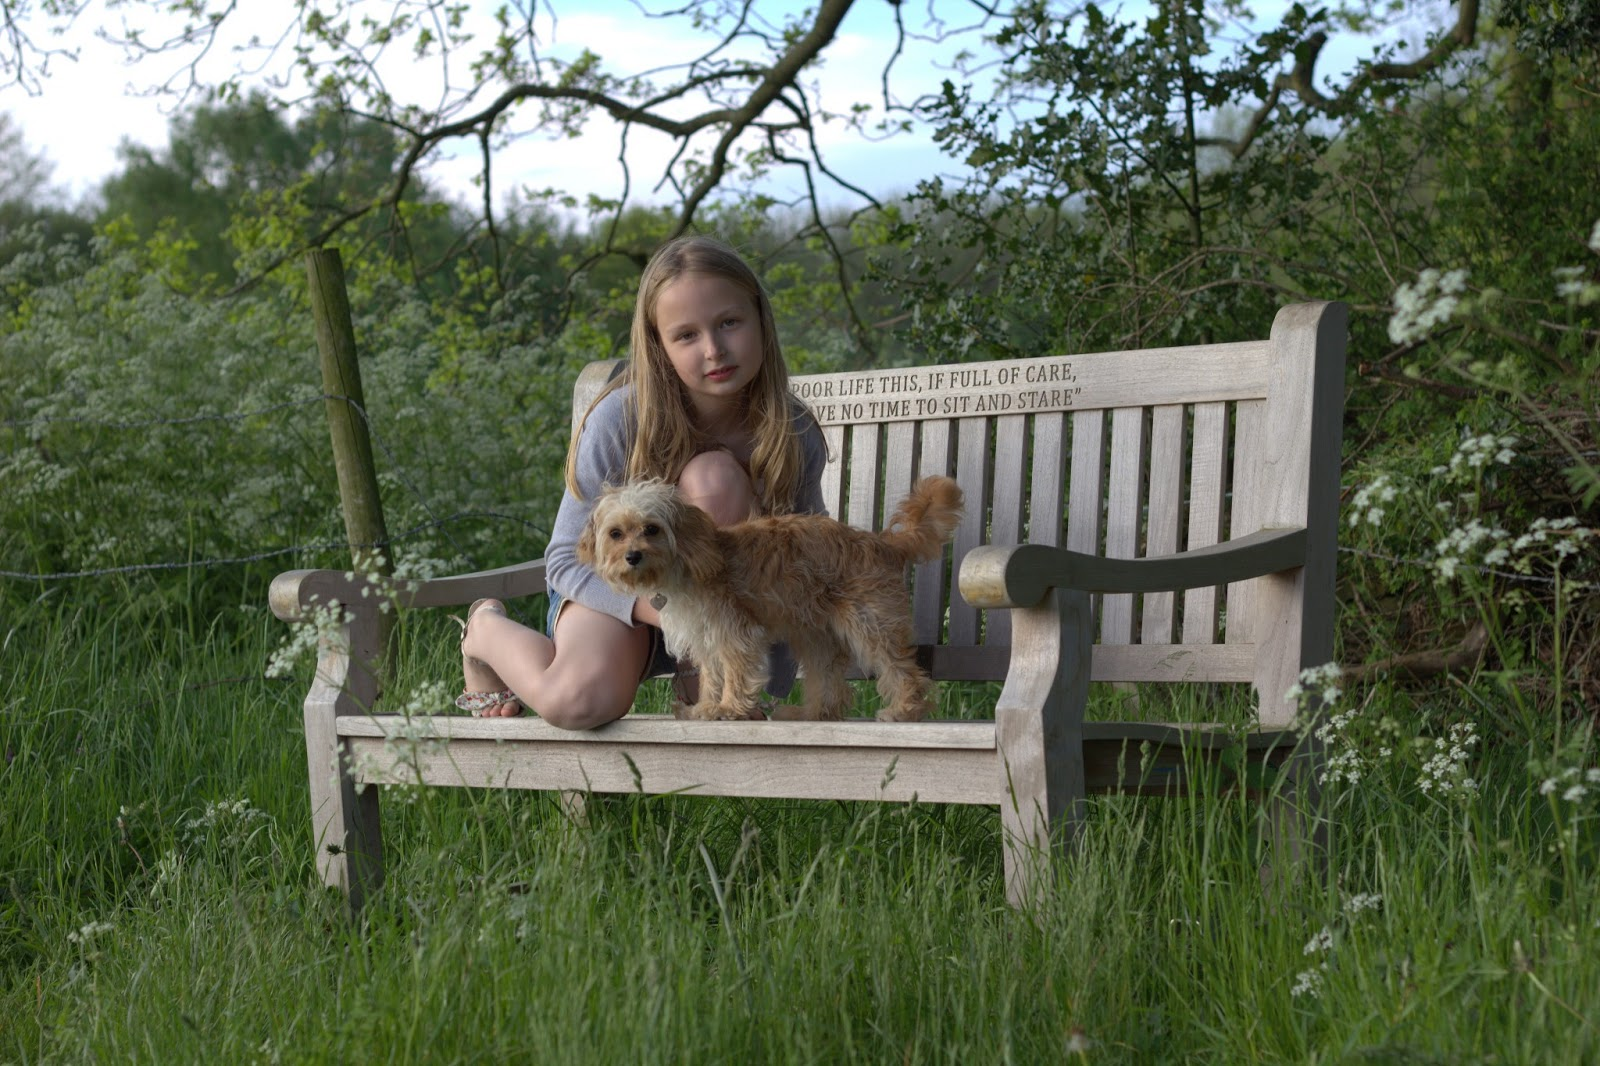 MiMi and Lulu on the bench